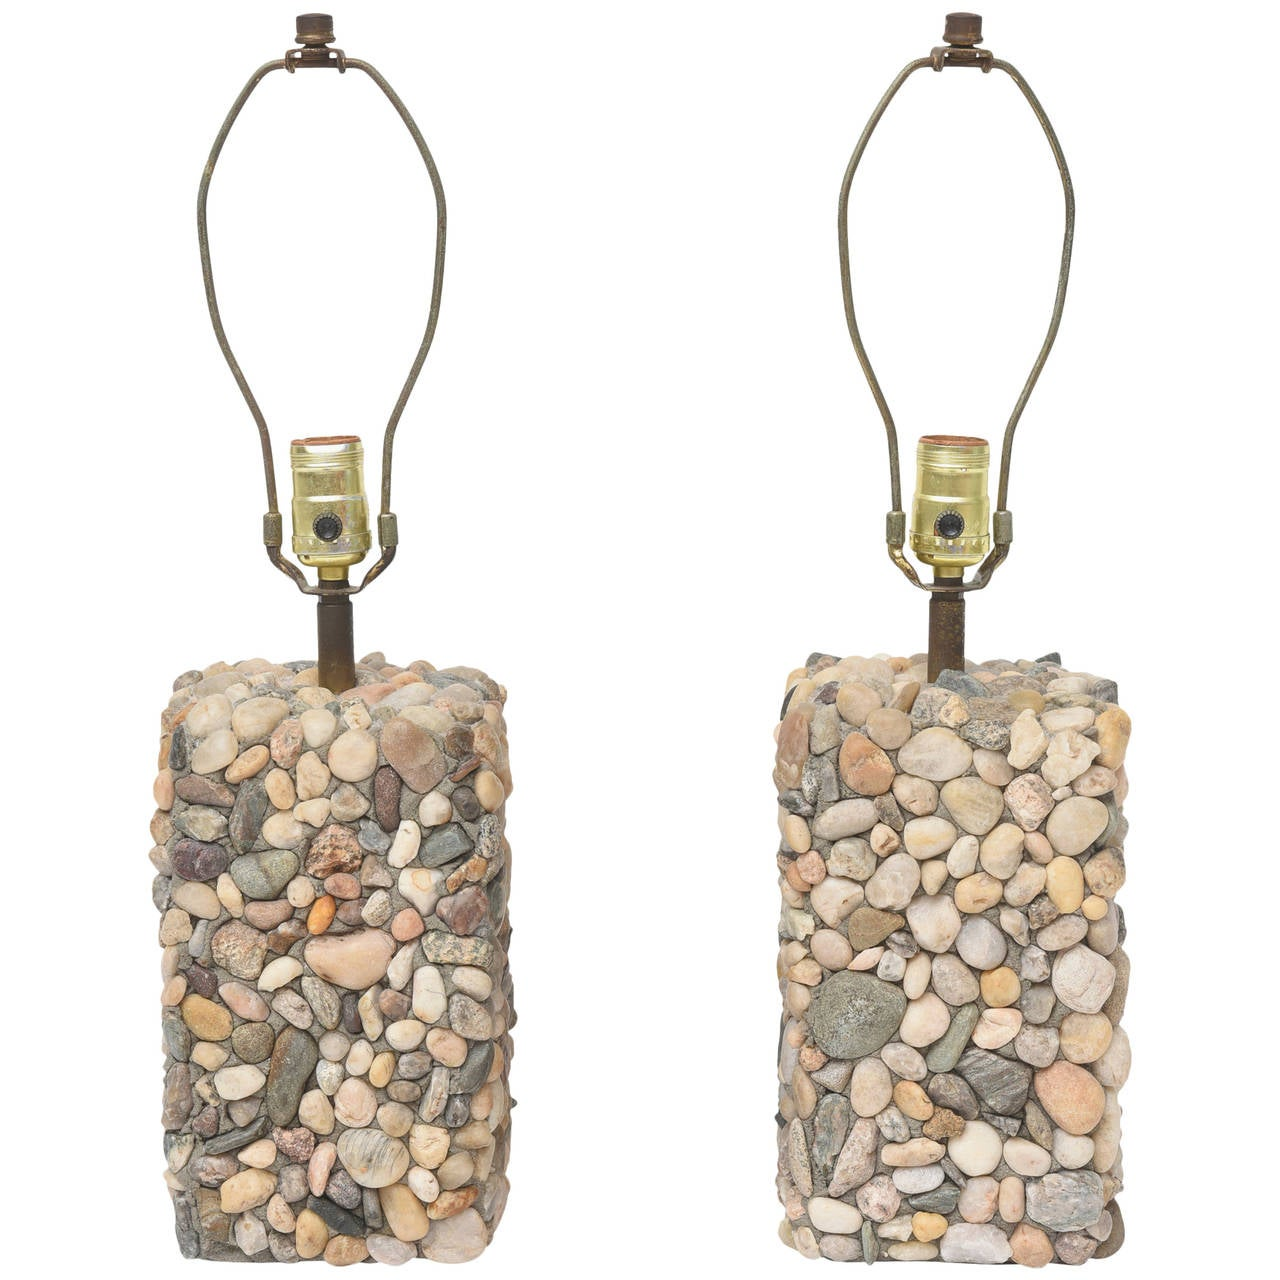 River rock table lamps for sale at 1stdibs for River rock lamp